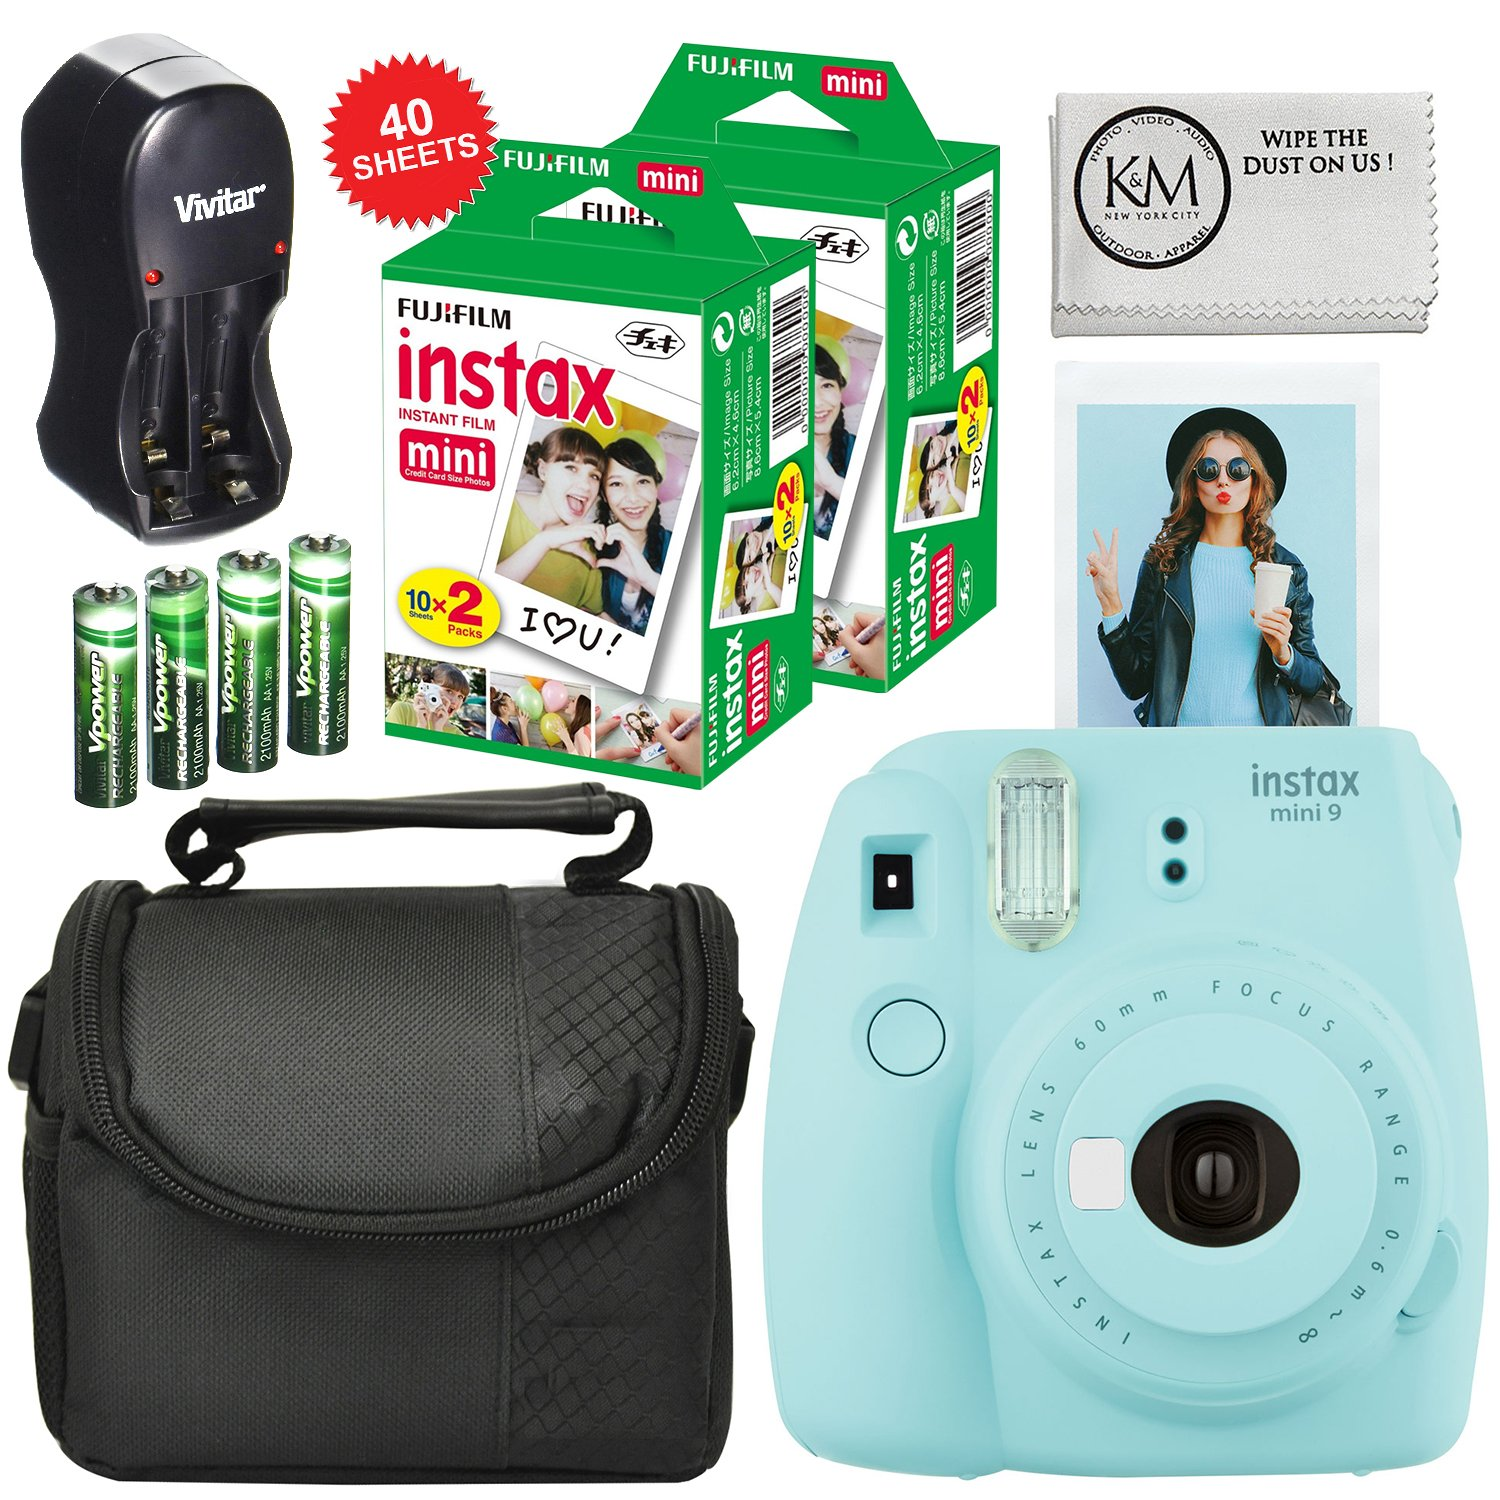 Fuji Instax Mini 9 + Carry Case + Rechargeable AA Batteries & Charger + Instax Mini Film (40 Sheets) (Ice Blue) by K&M (Image #1)